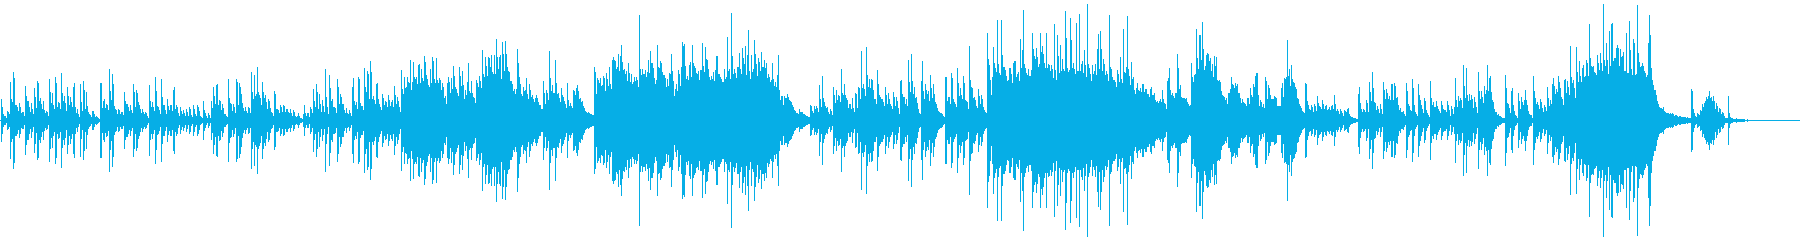 Moist and sad piano solo's reproduced waveform